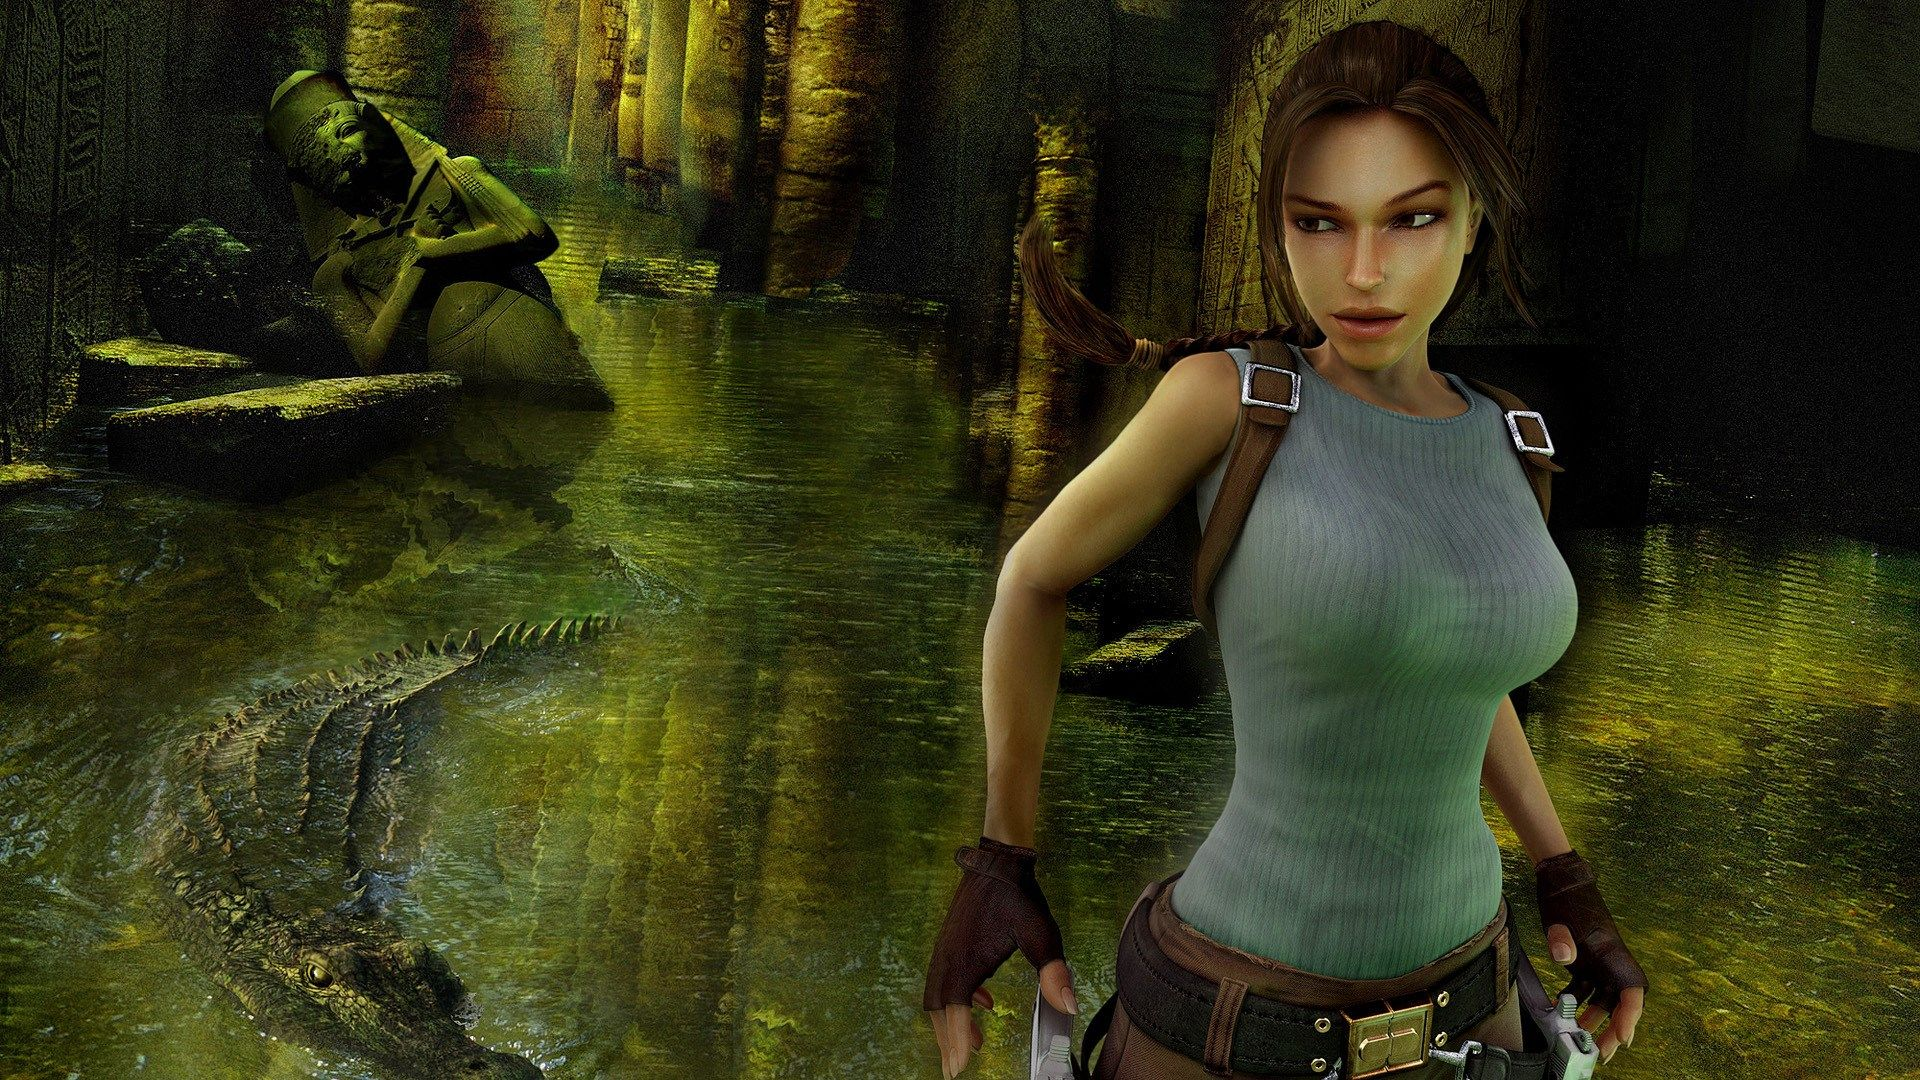 1920x1080 Hd Wallpaper Tomb Raider Anniversary Tomb Raider Game Tomb Raider Tomb Raider Lara Croft